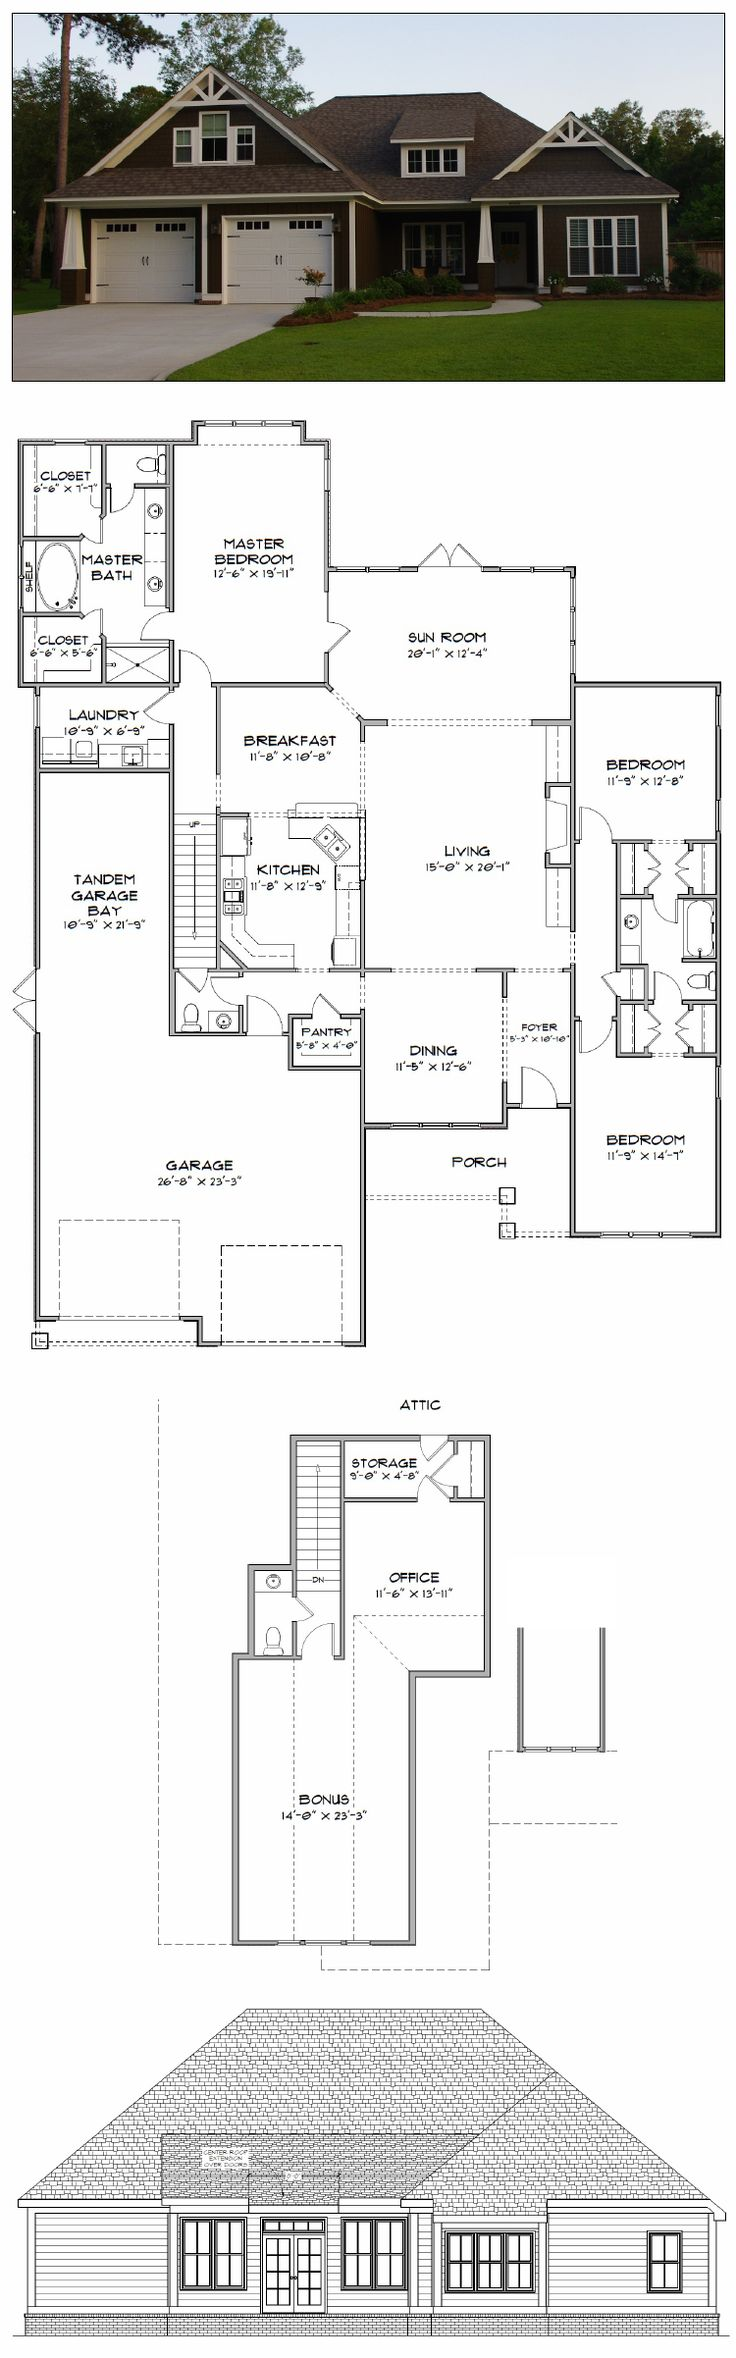 19 best House Plans 2000-2800 sq ft images on Pinterest | Home ...